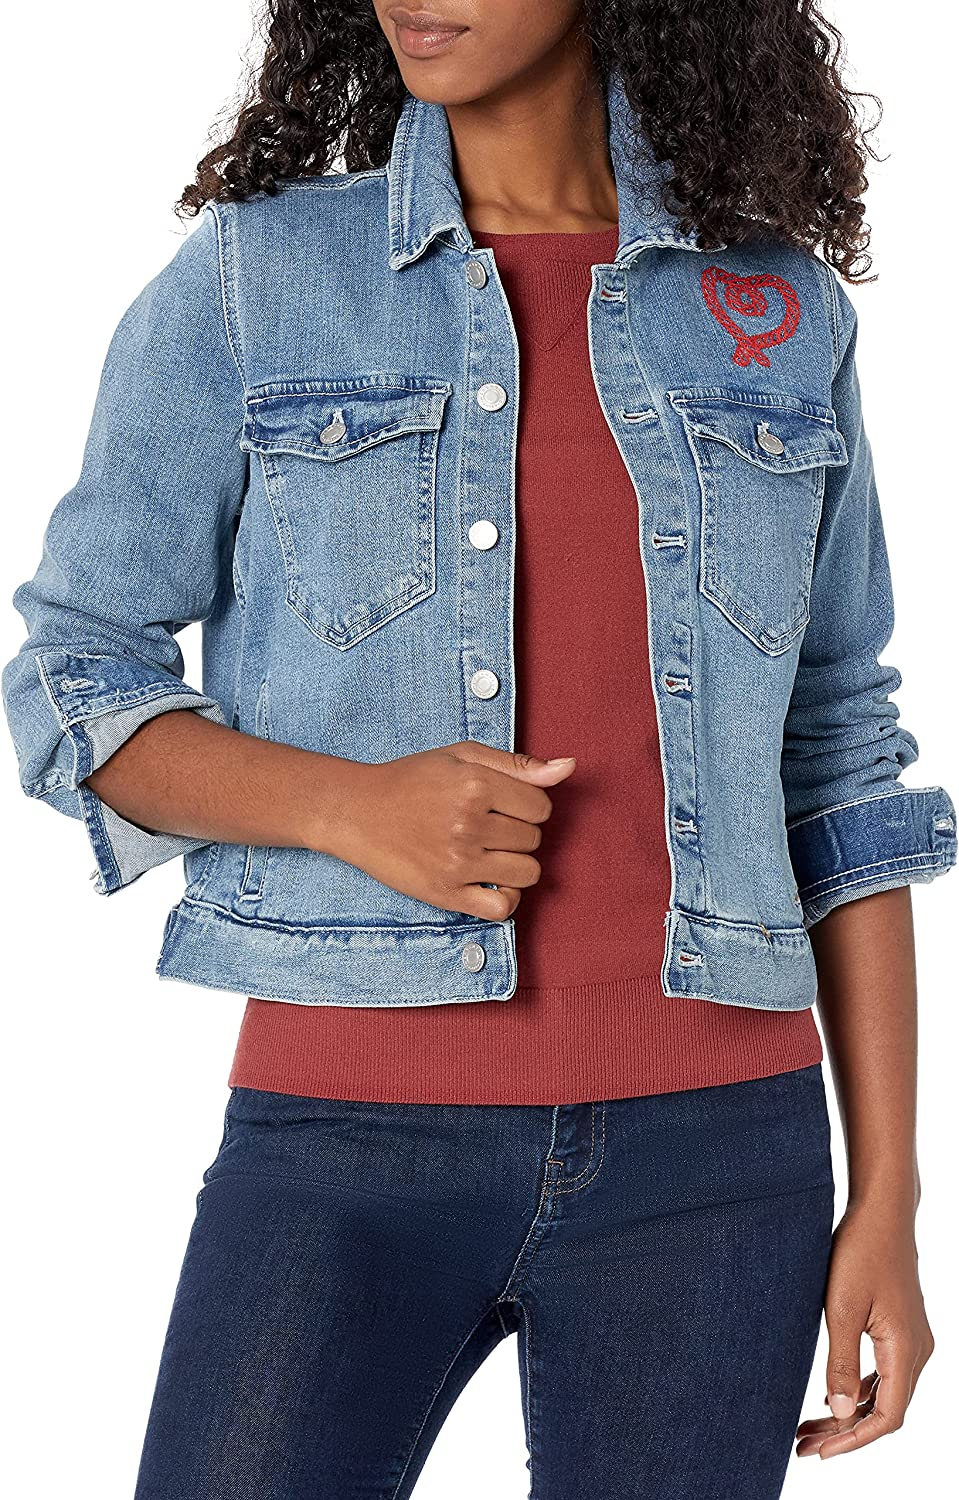 J.Crew Mercantile Women's Cropped Embroidered Denim Jacket